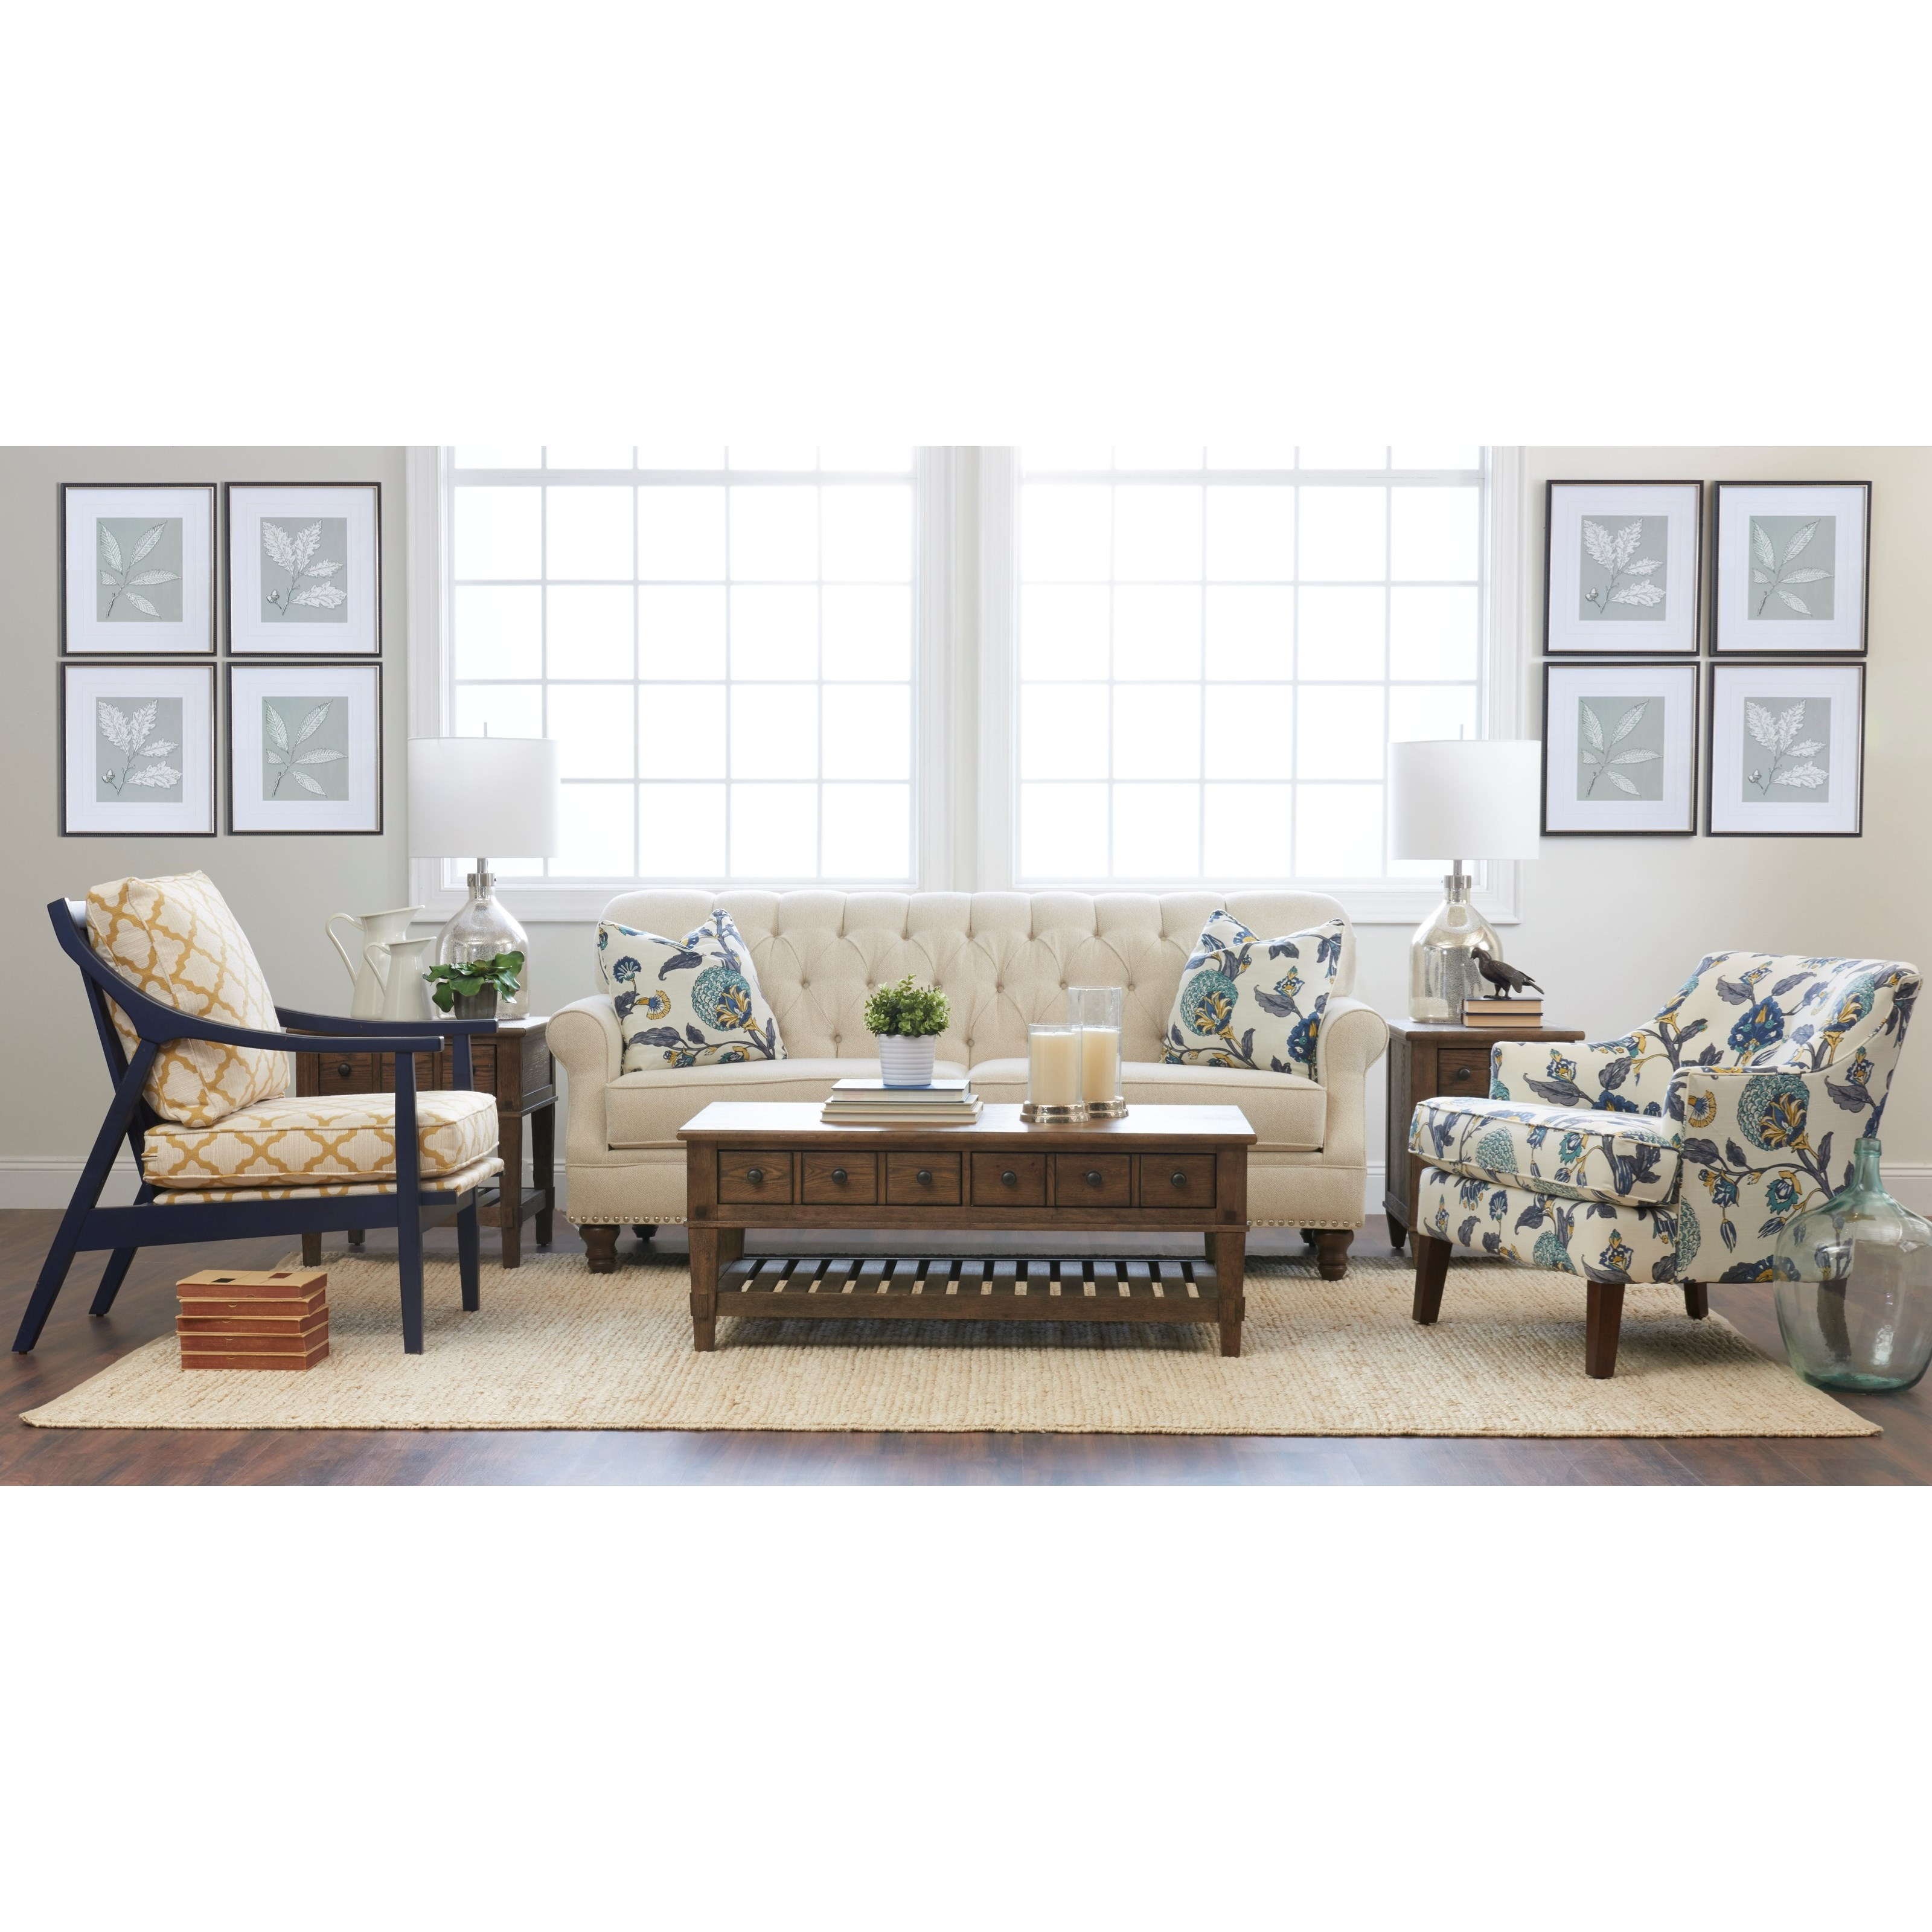 Klaussner Burbank K96810 S Traditional Tufted Apartment